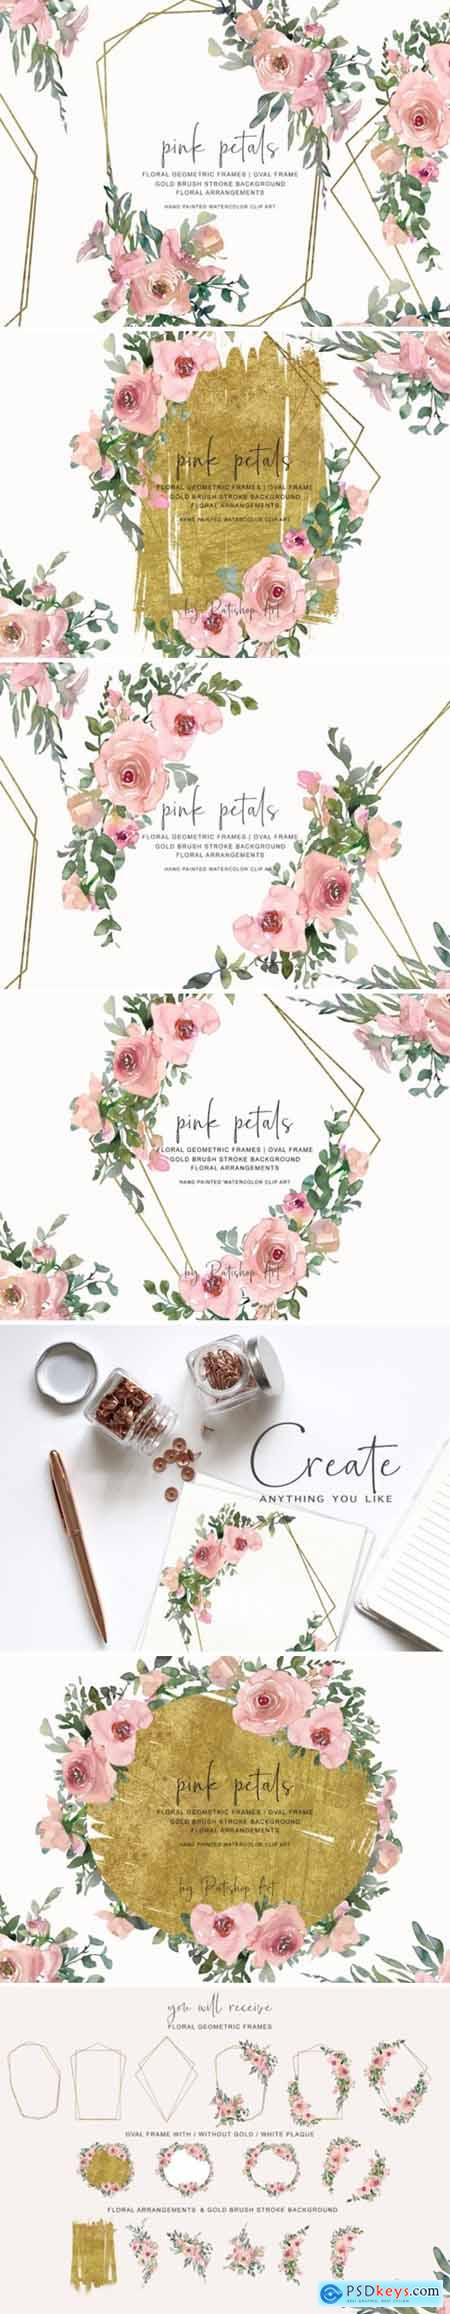 Watercolor Pink Gold Floral Frame Set 1585483